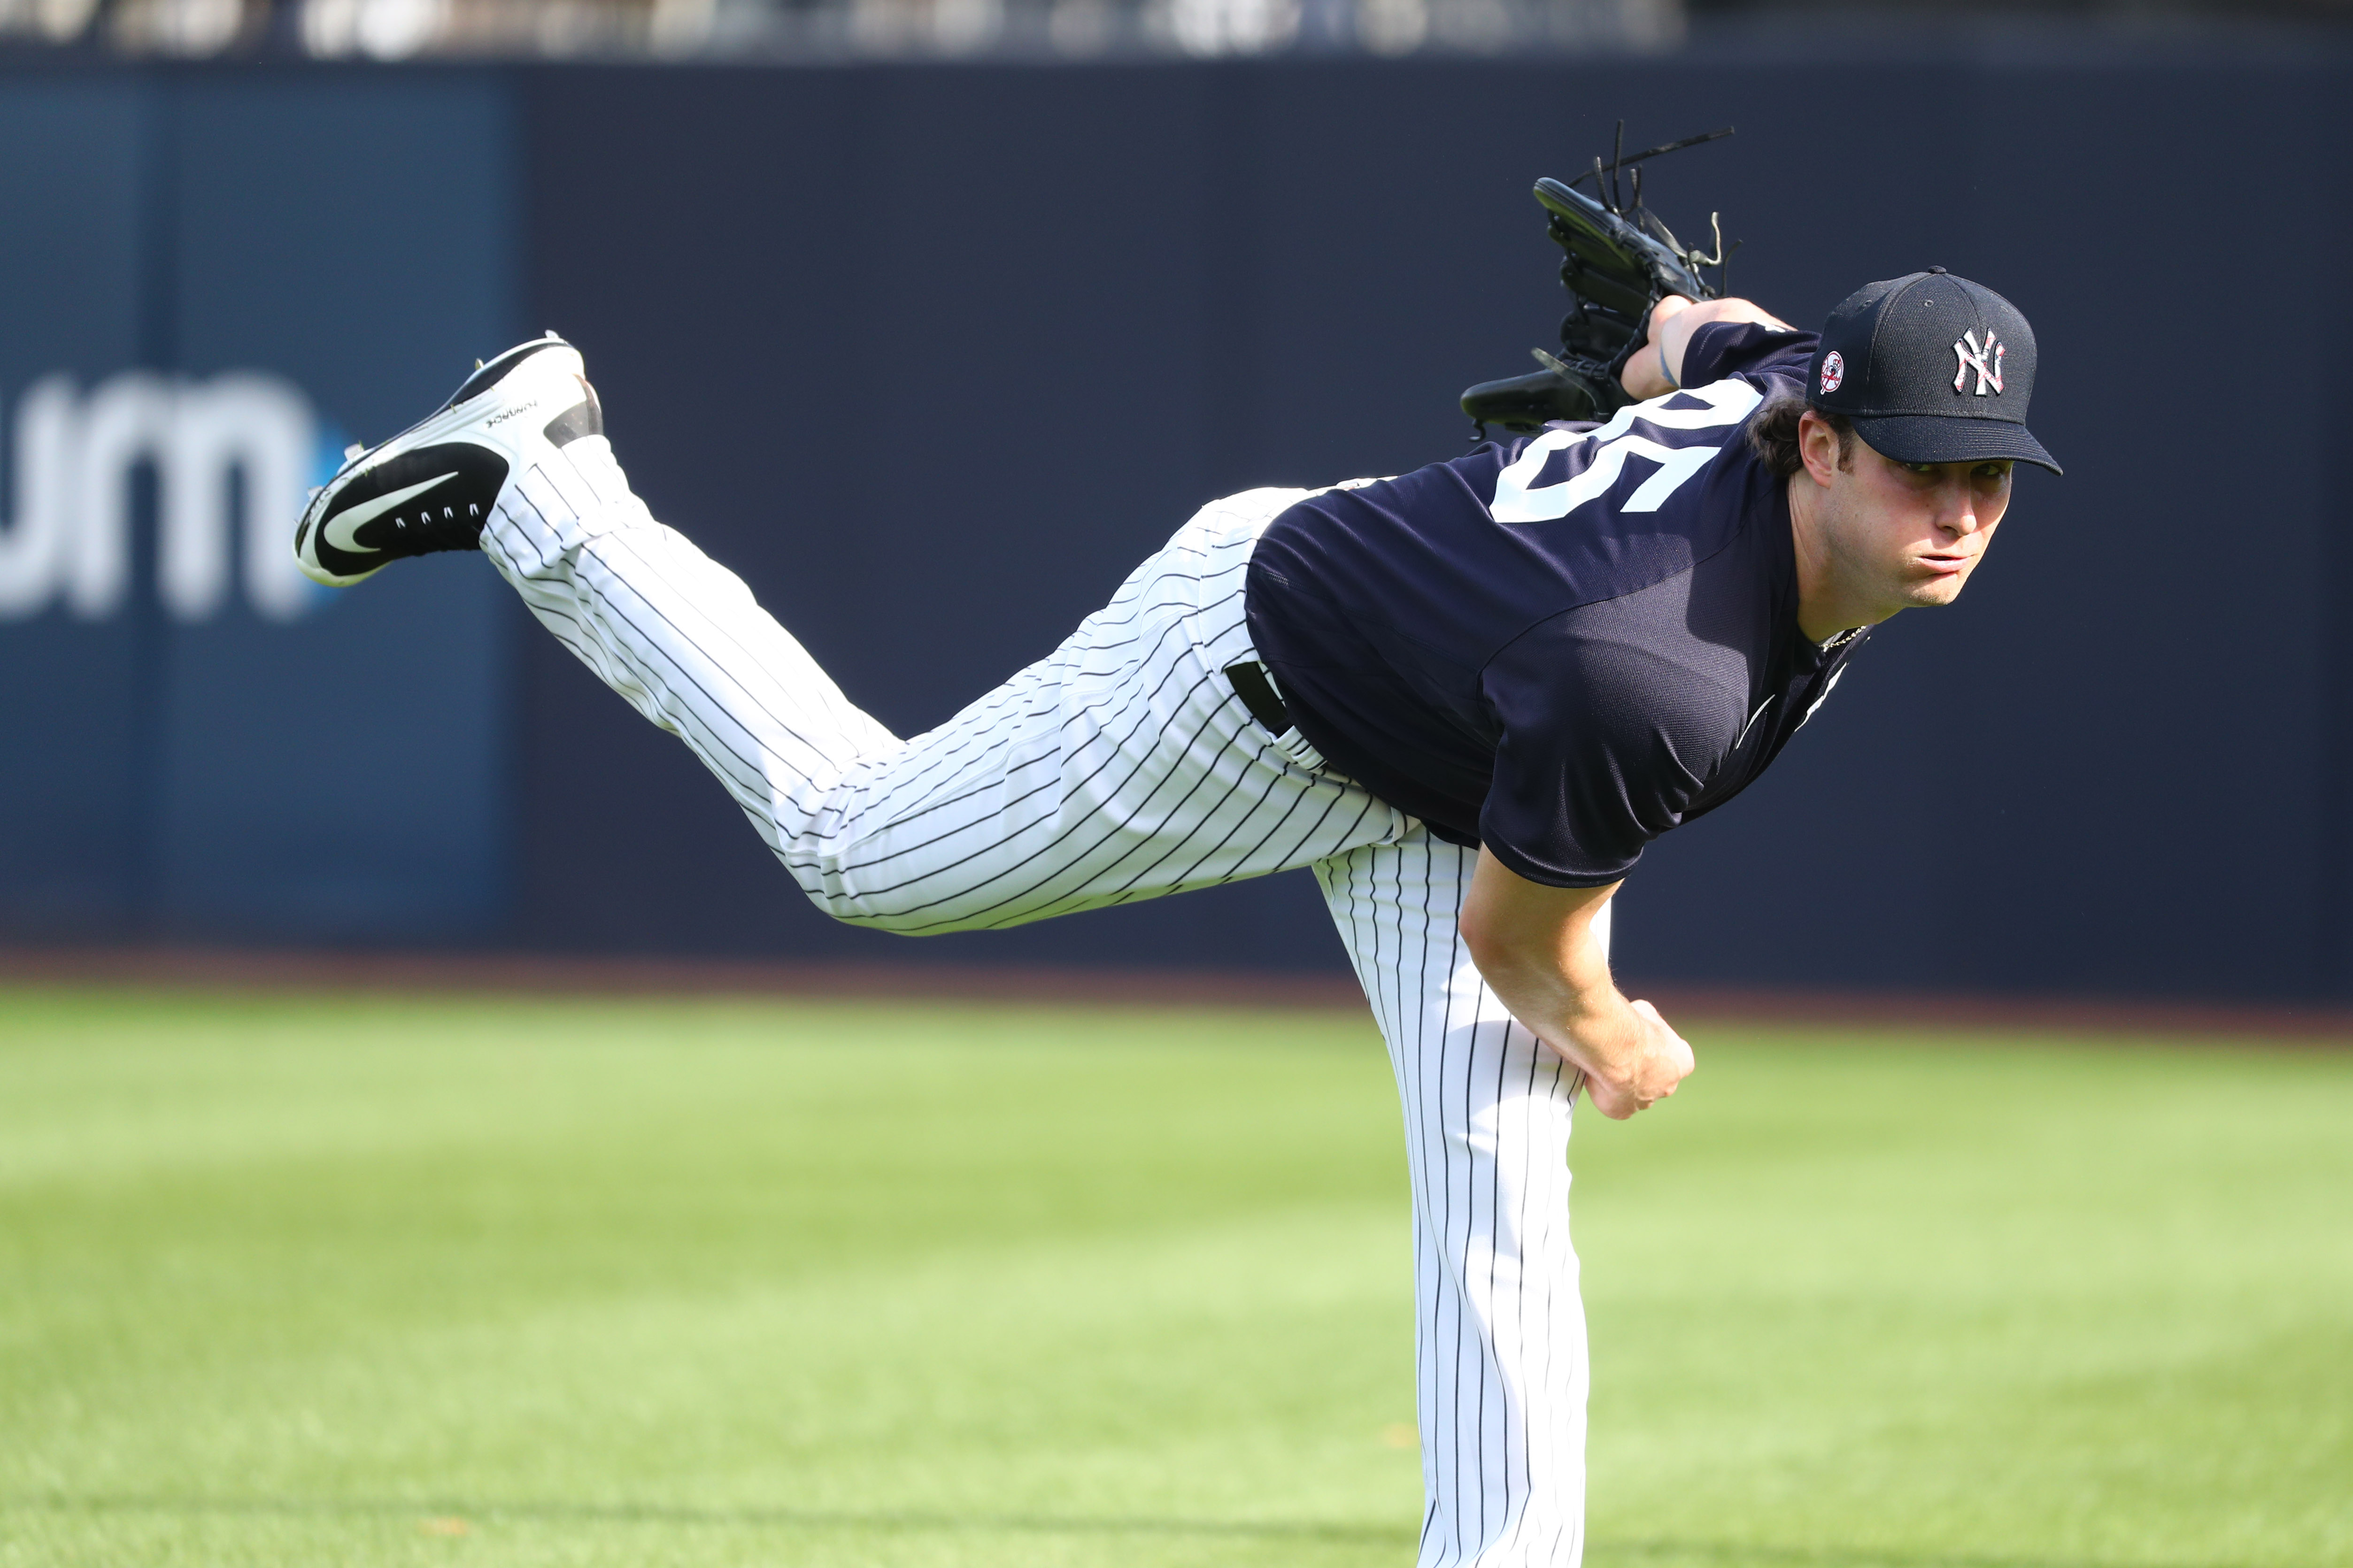 Gerrit Cole's First Day at Spring Training Reignites Conversation of the Yankees Fulfilling Championship Aspirations